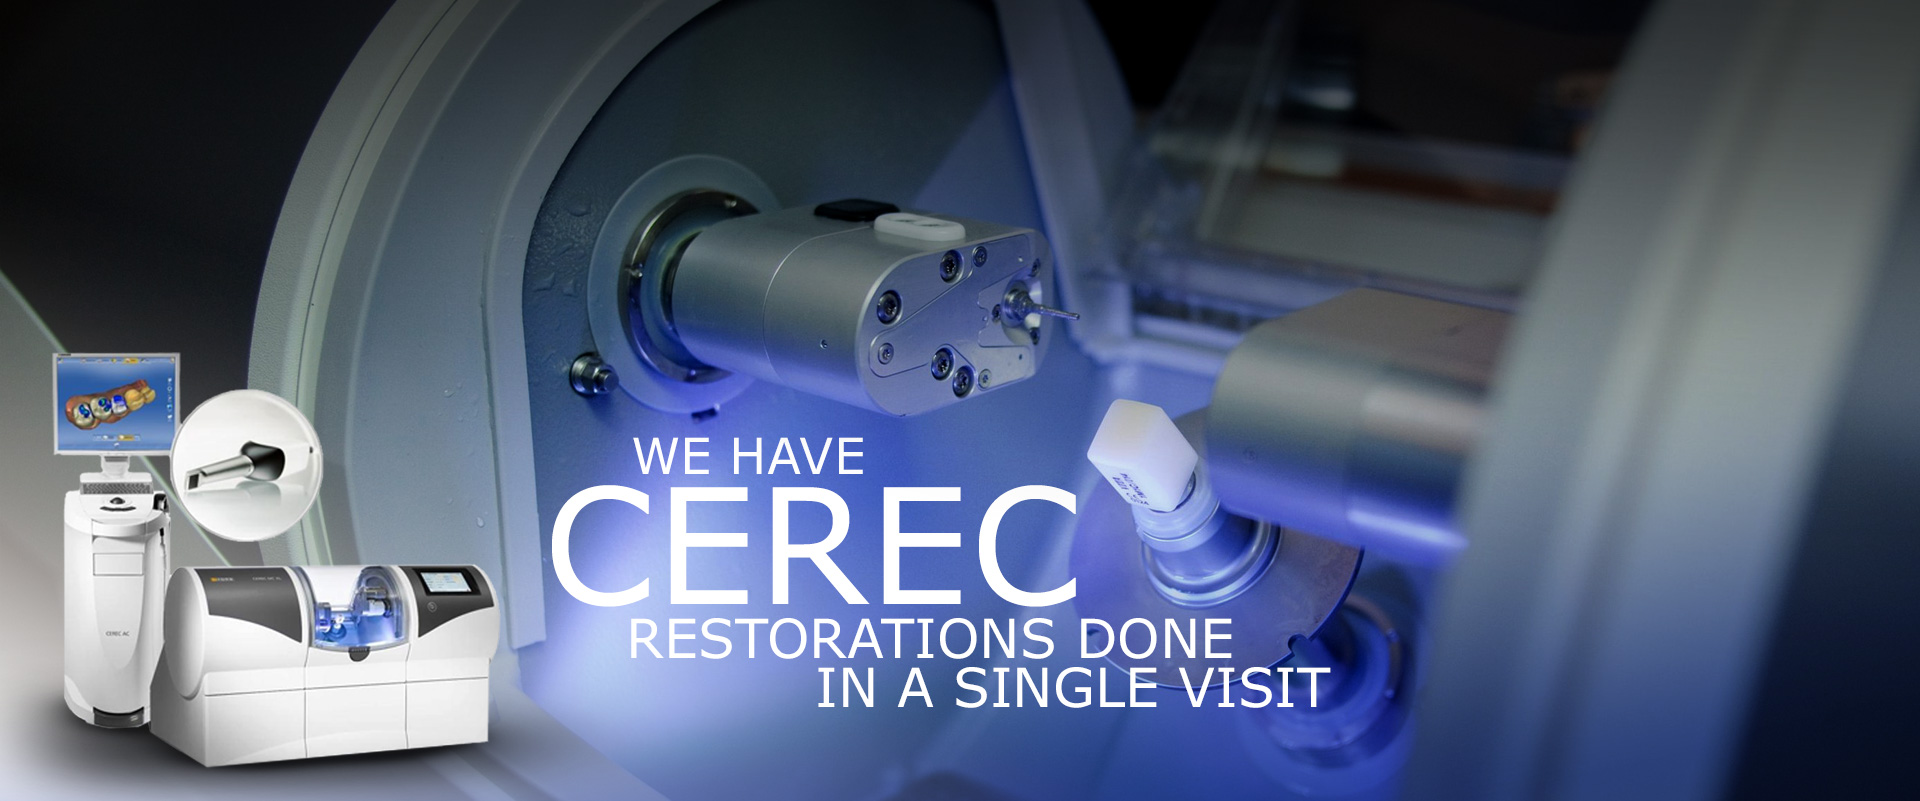 header-cerec.jpg